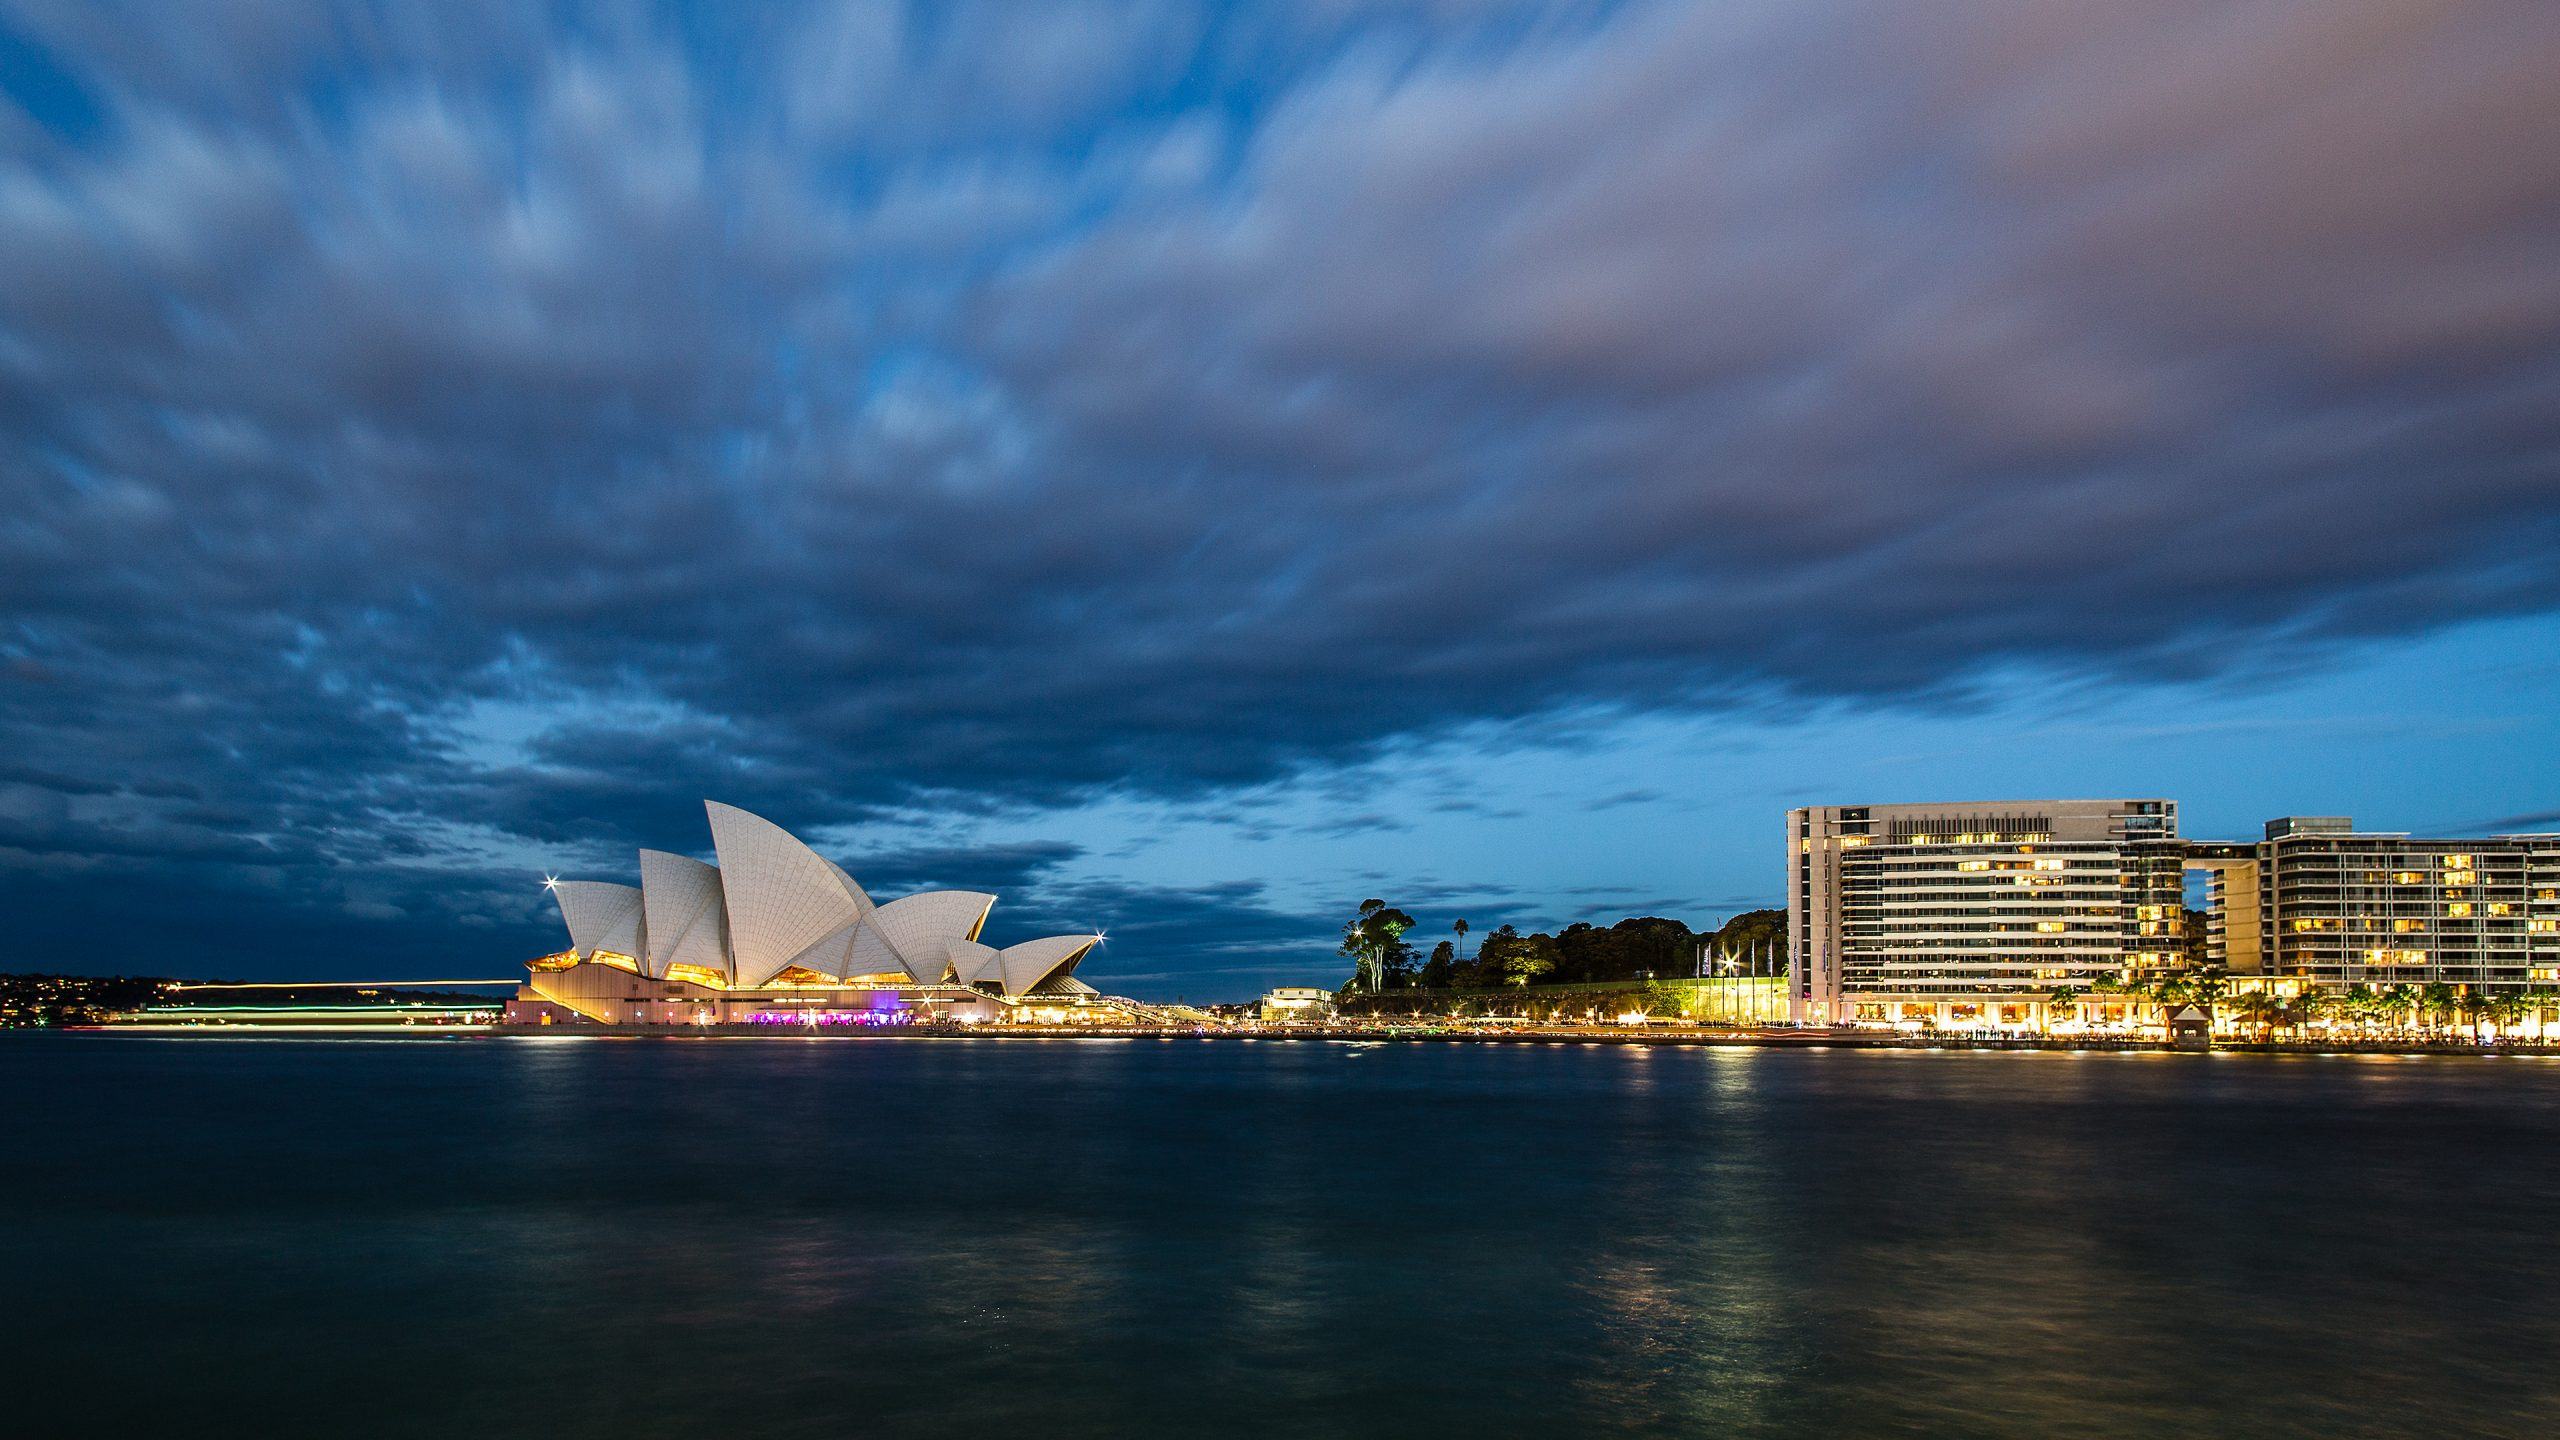 my sydney opera house Let's get social 2 my fair lady at sydney opera house 60th anniversary production my fair lady joan sutherland theatre sydney opera house august 28, 2016 – november 04, 2016 brisbane's lyric theatre, qpac from 12 march and melbourne's regent theatre from 11 may, 2017 my fair lady at sydney opera house – now, [].